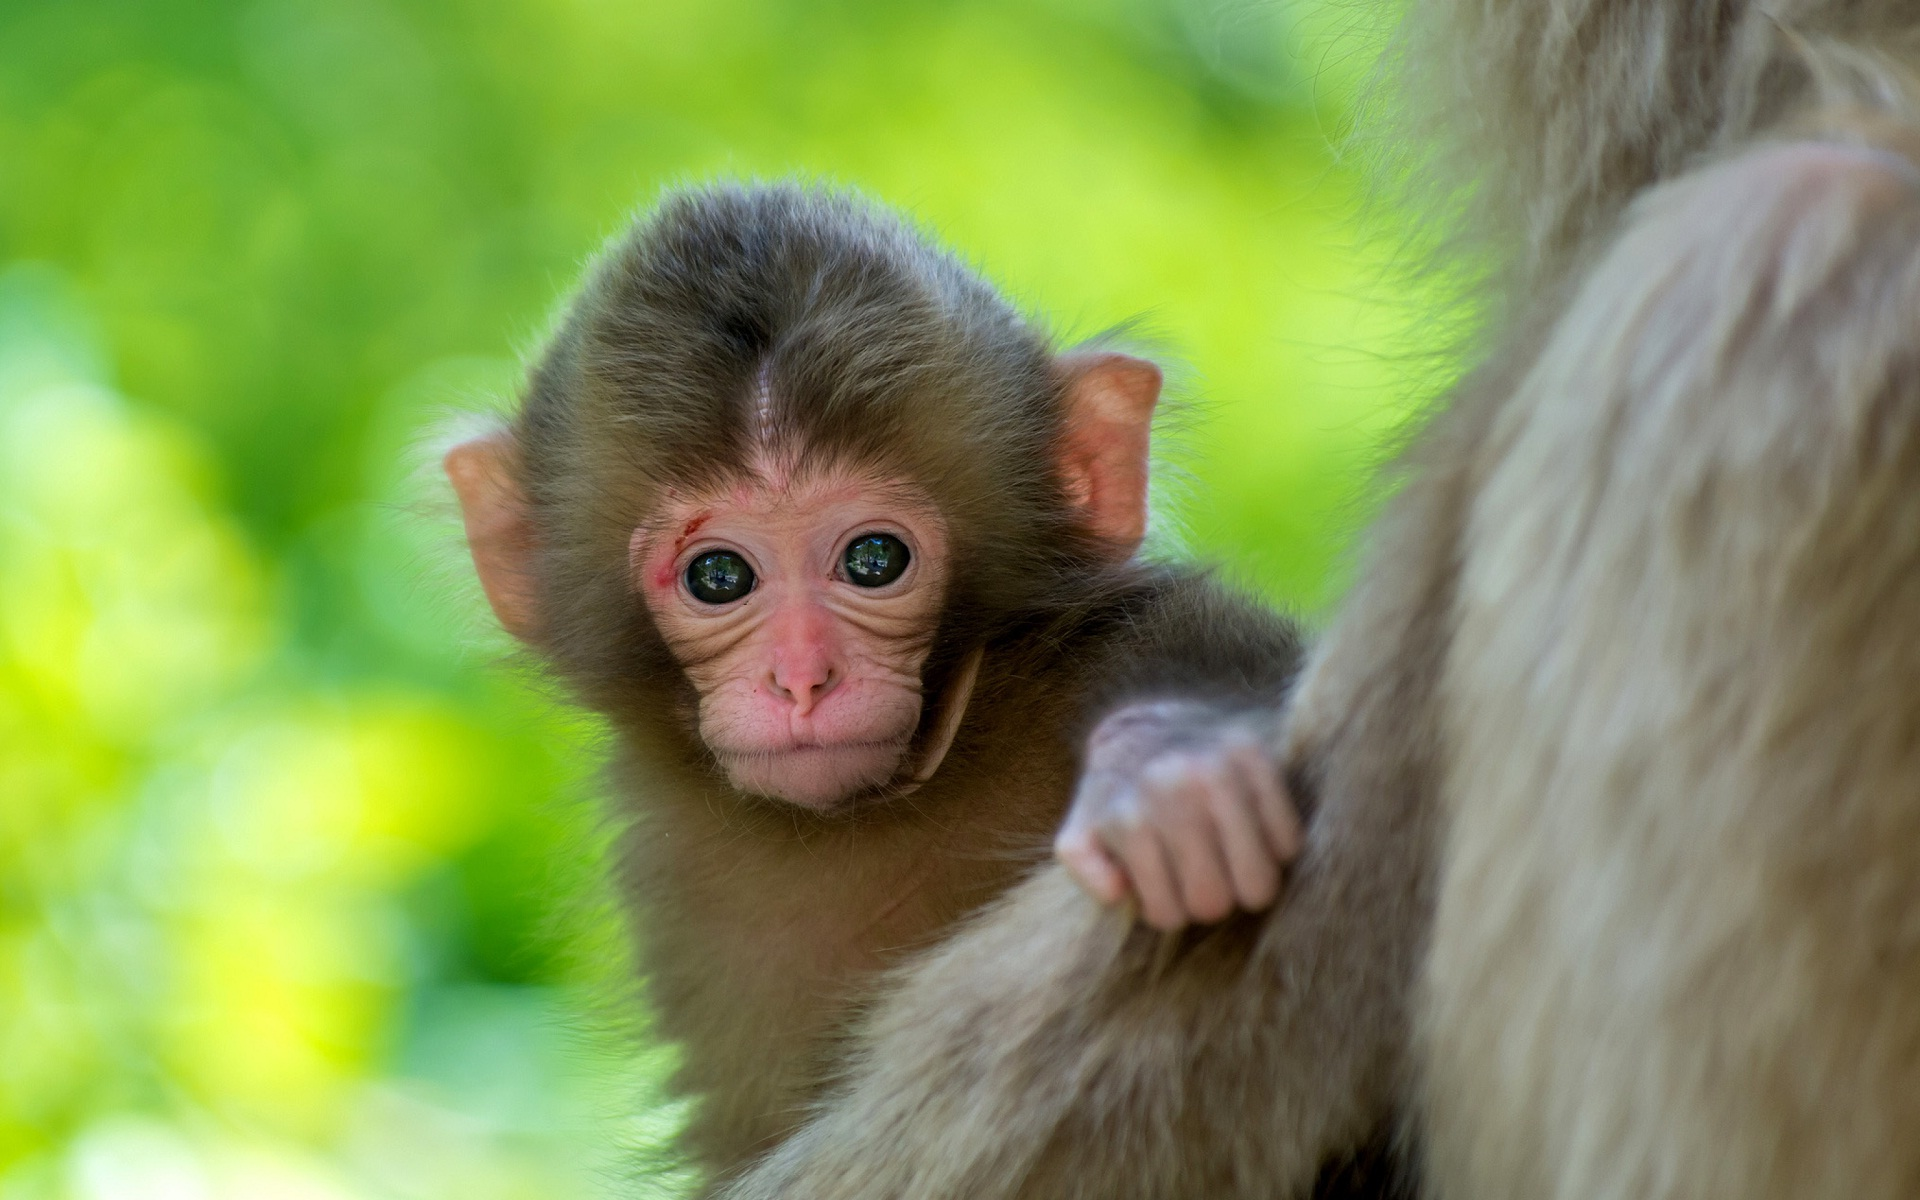 Cute Baby Animal Wallpapers Download Free